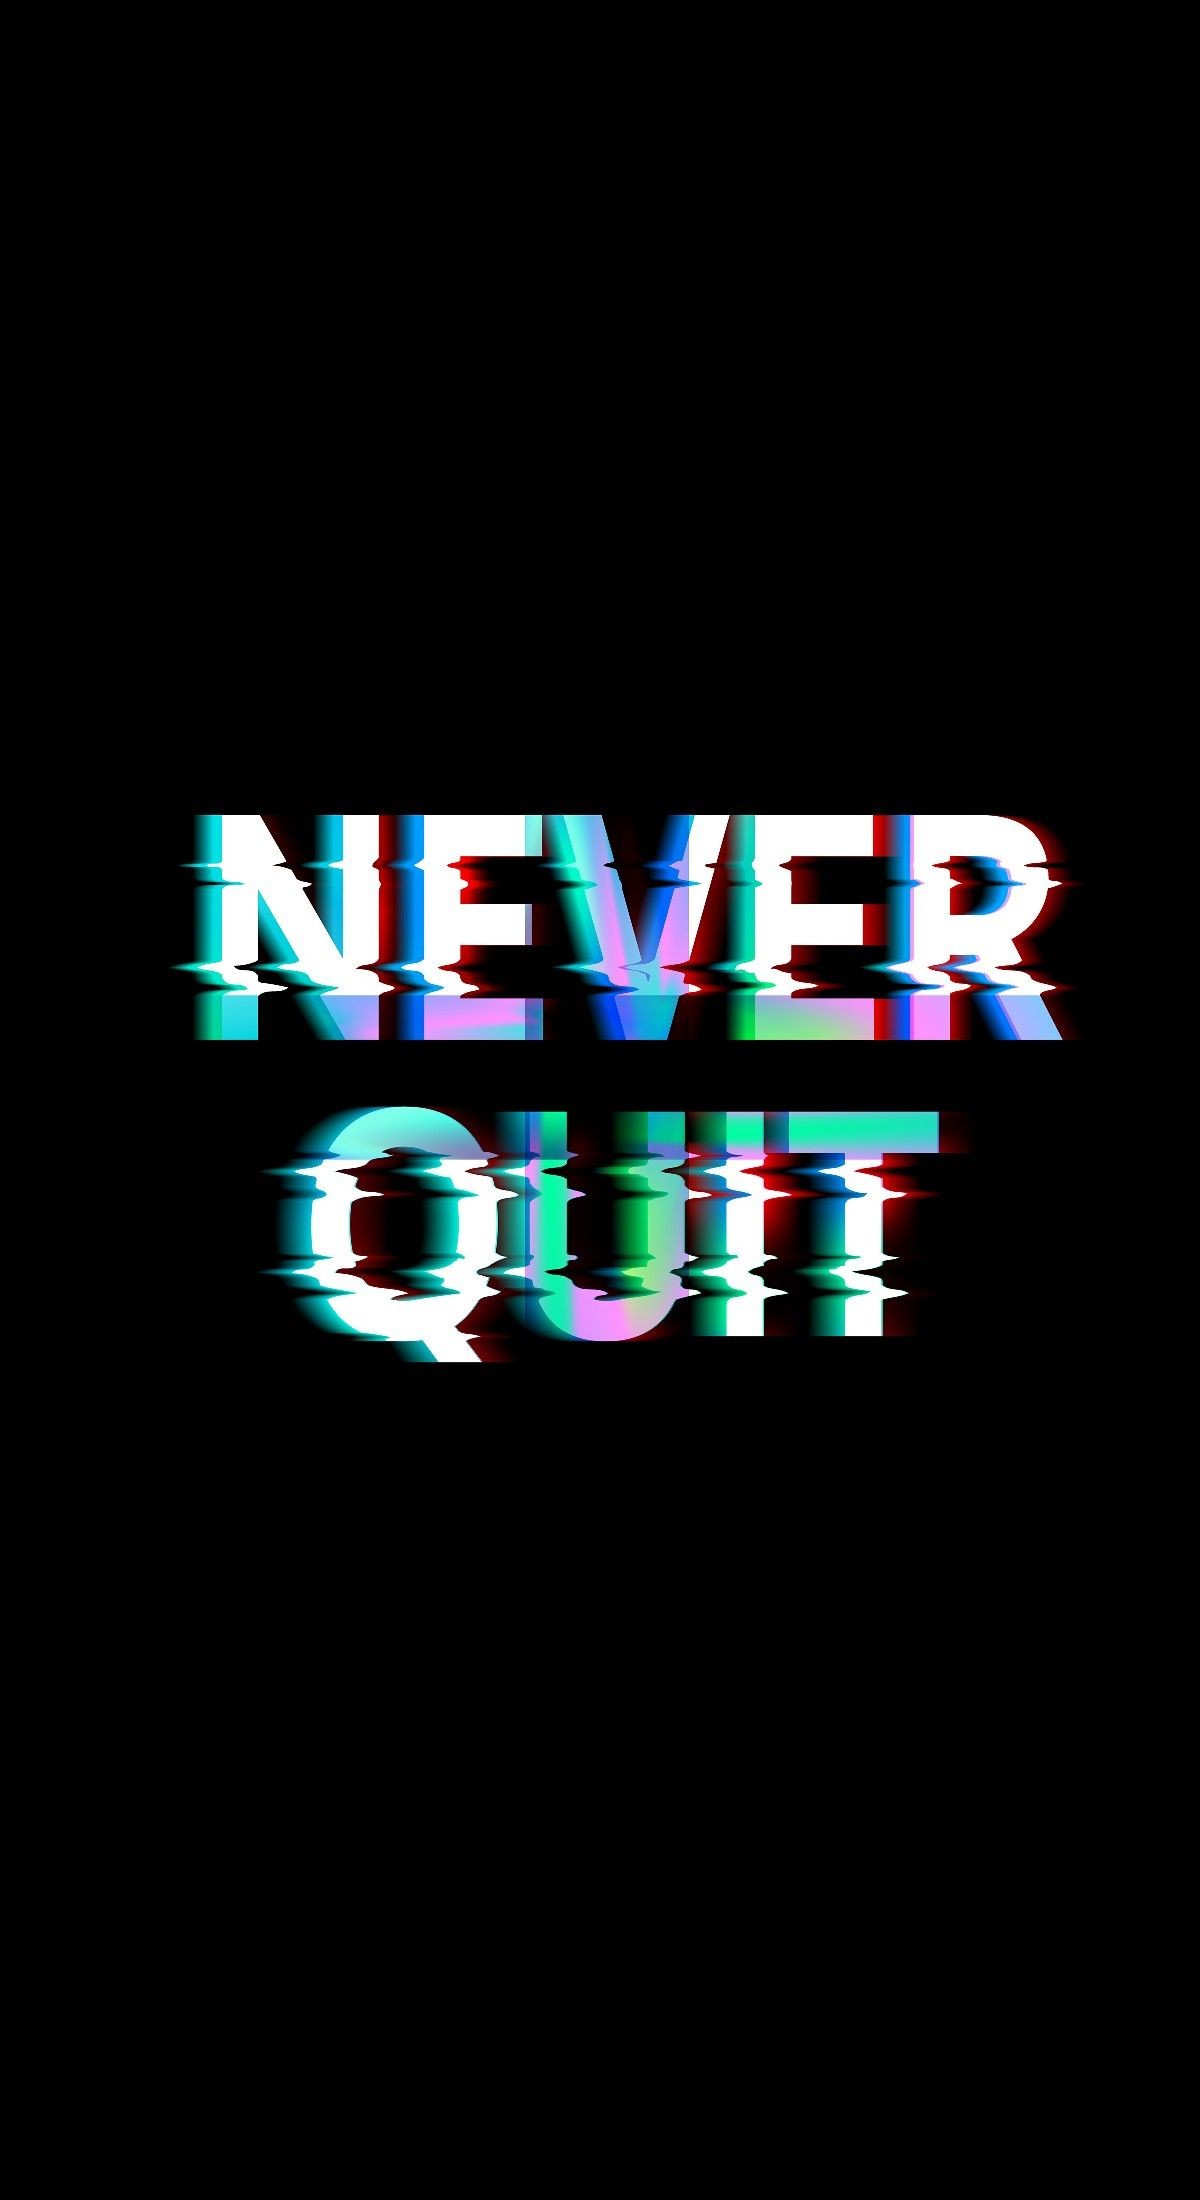 Pin By Nanis Ka On Quotes Text Glitch Wallpaper Psycho Wallpaper Iphone Psycho Wallpaper